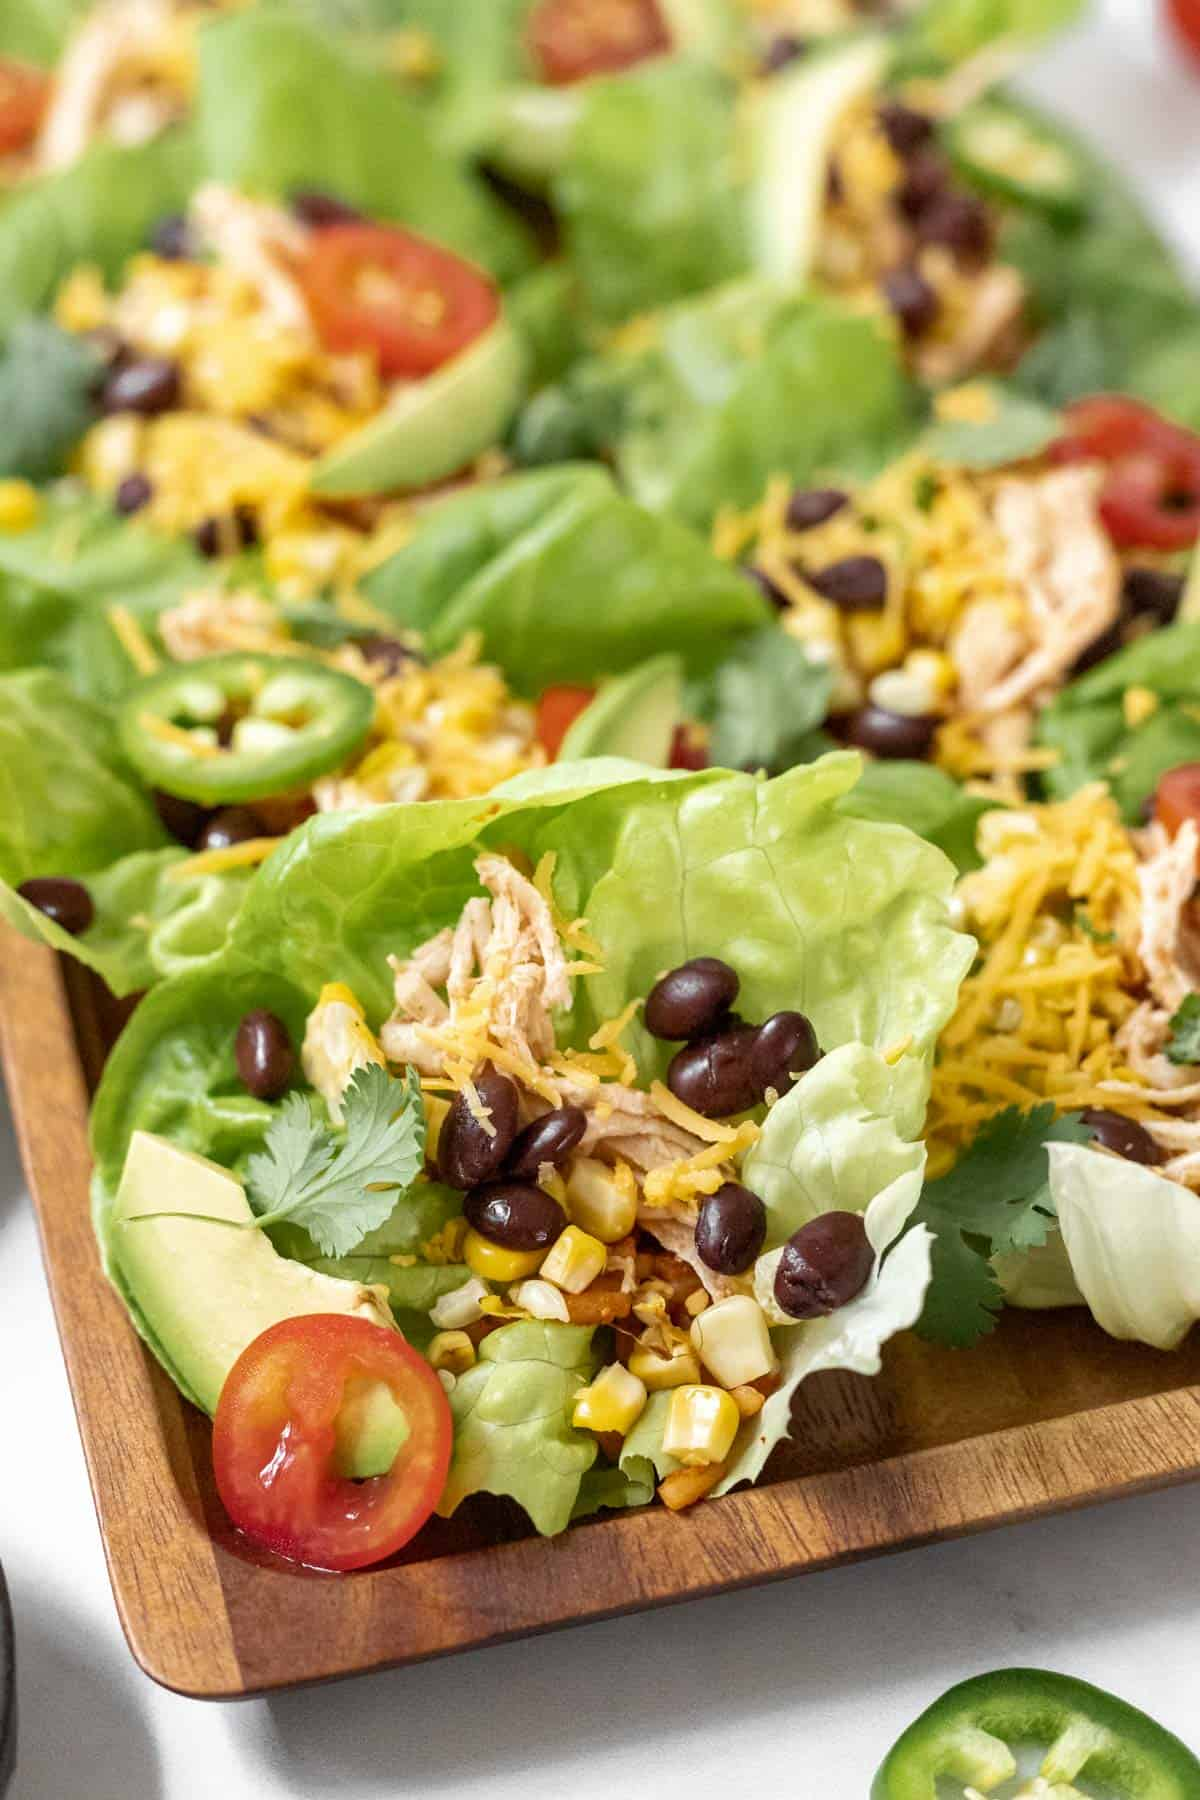 A closeup look at all the fixings inside a lettuce wrap taco: beans, corn, avocado, tomatoes, and shredded chicken.